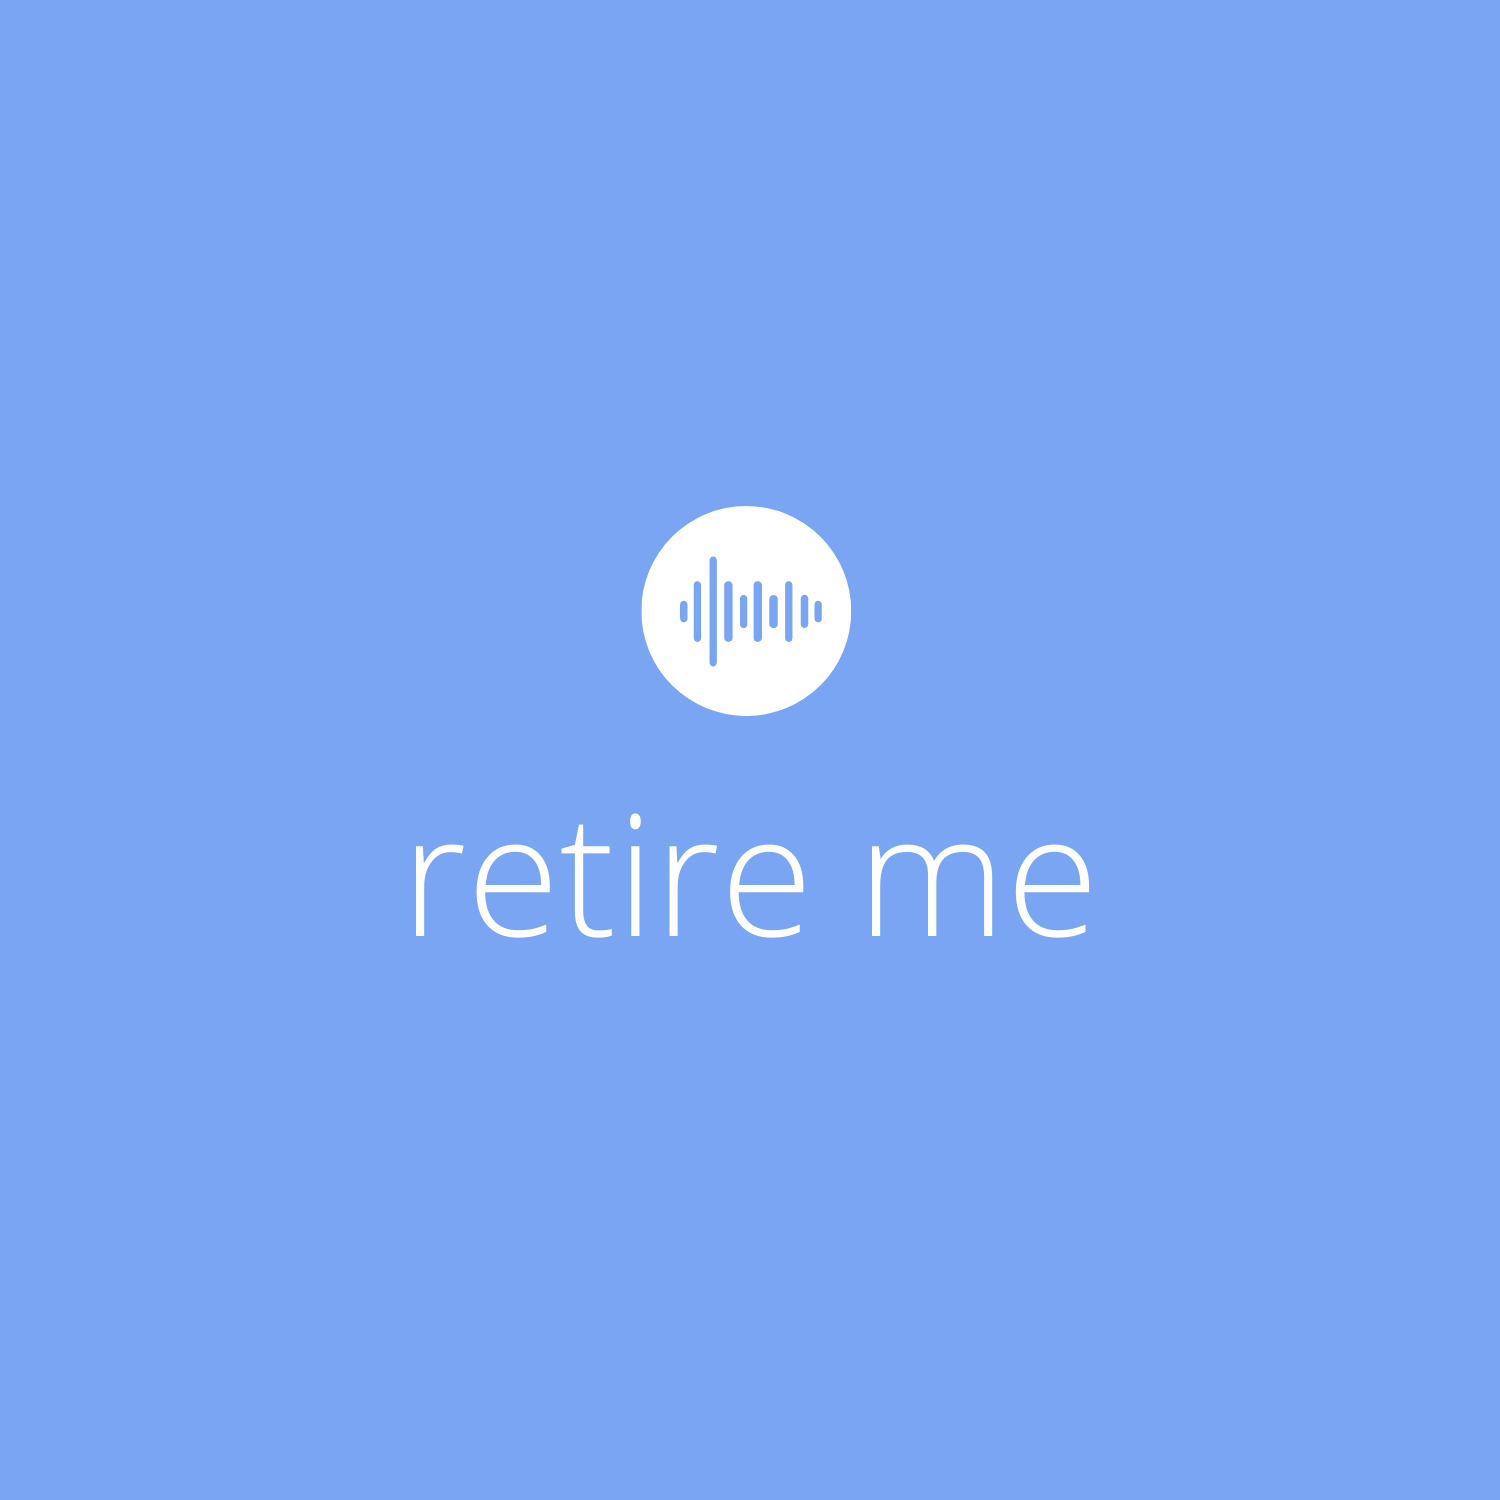 Retire Me - Episode 6 - Wills - Why Retirement is a Good Time to Update Your Will Thumbnail